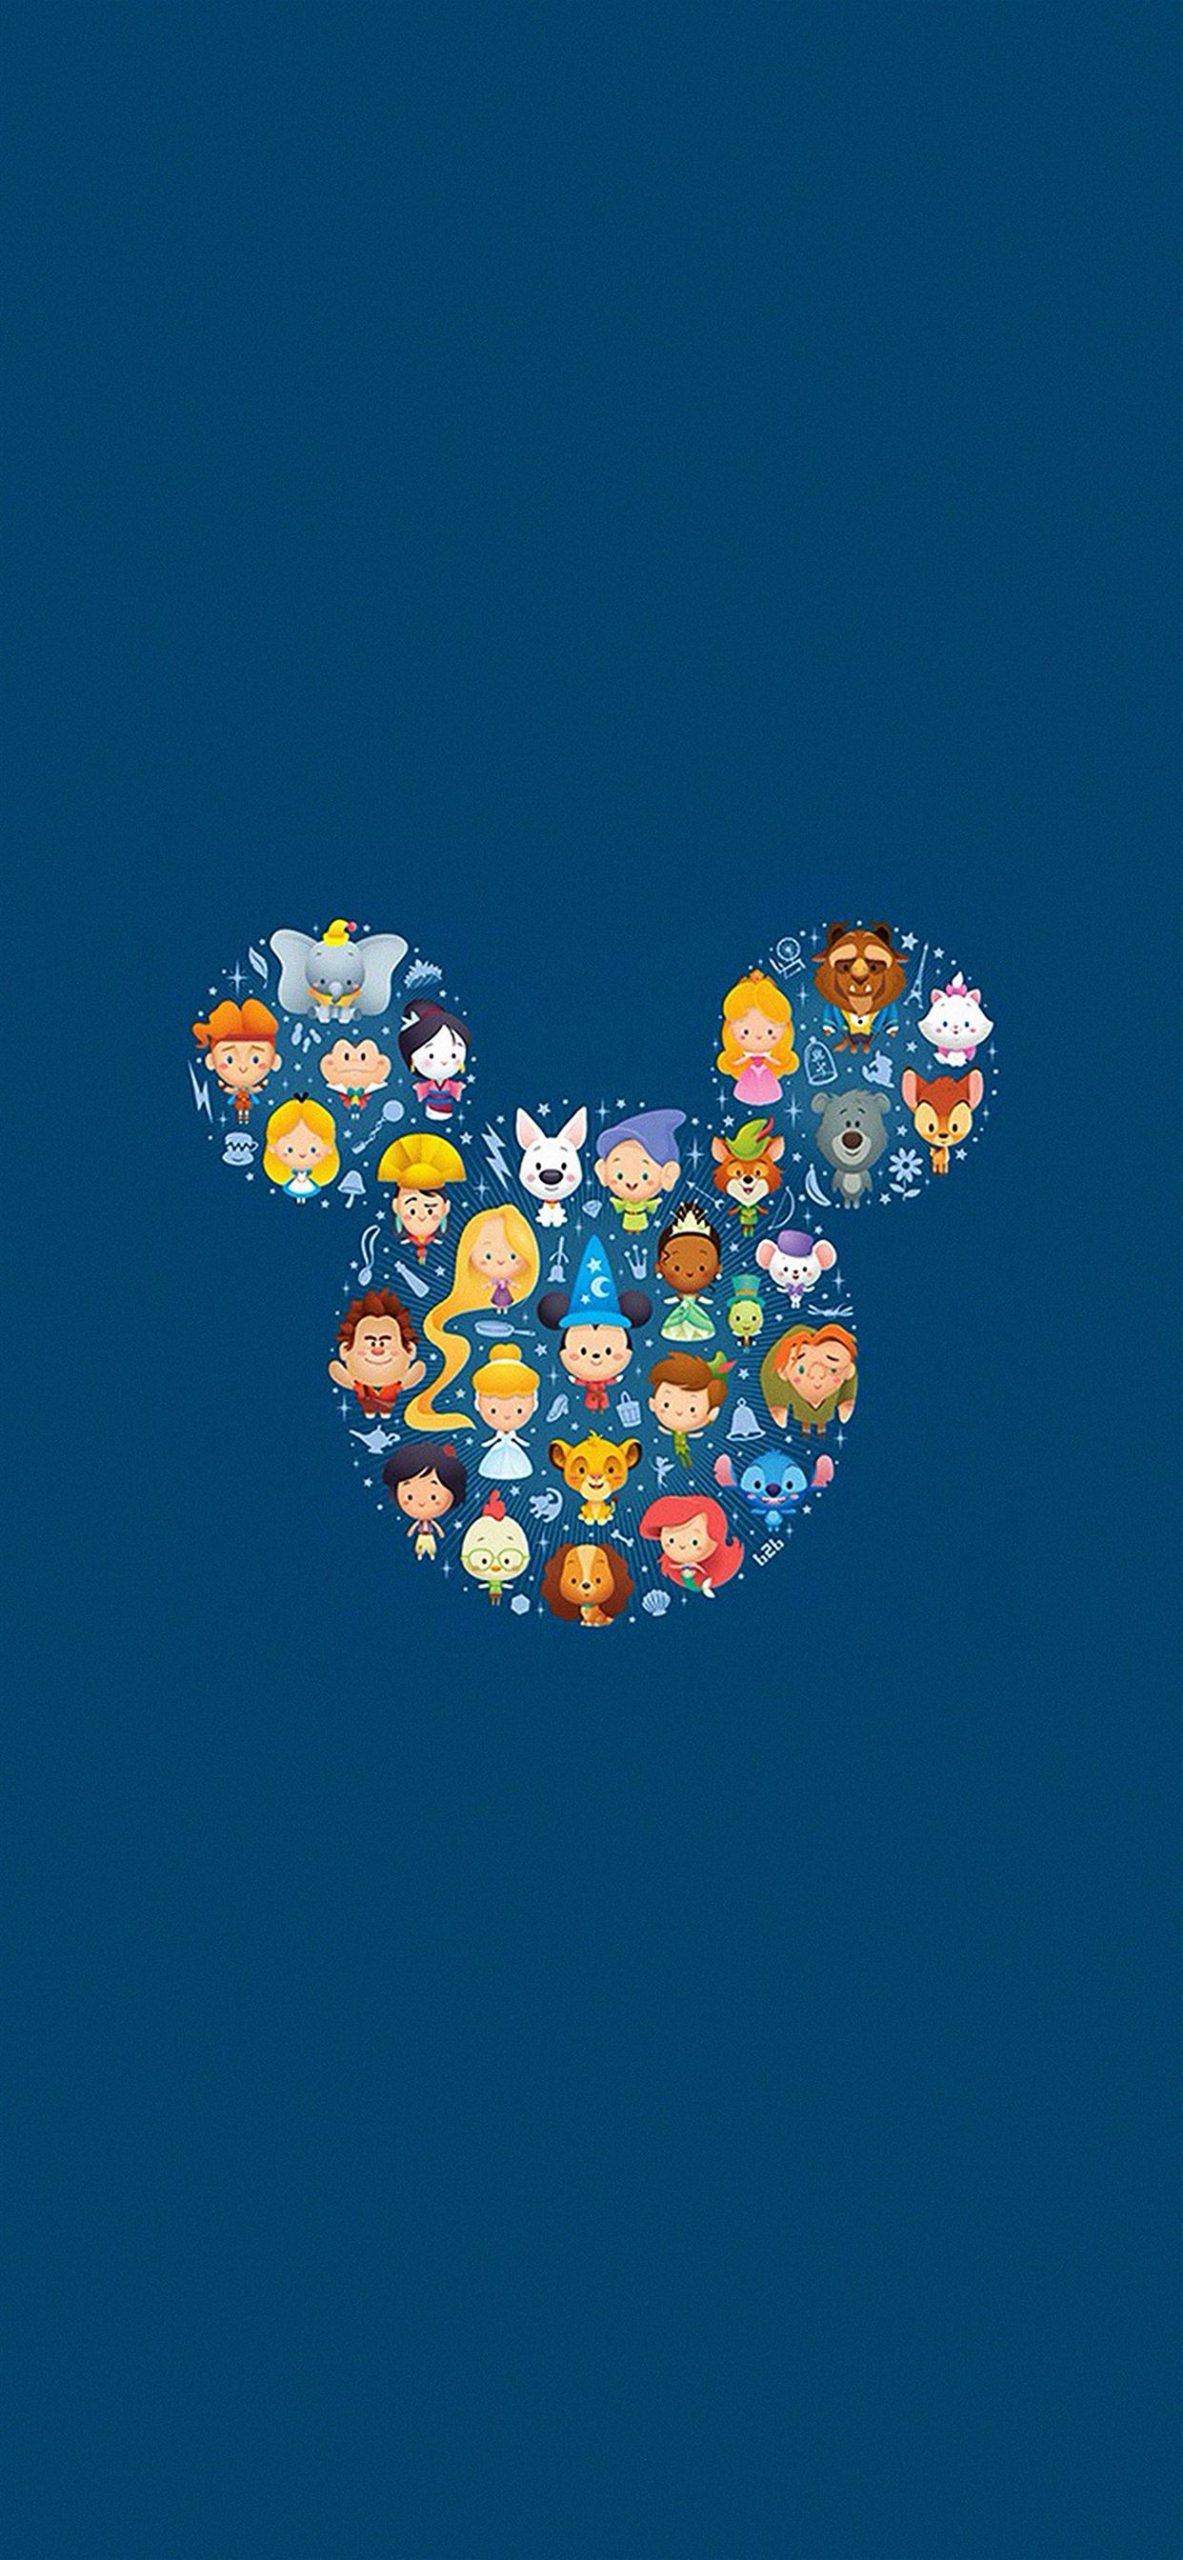 Disney art character cute iphone 11 pro max wallpaper ilikewallpaper